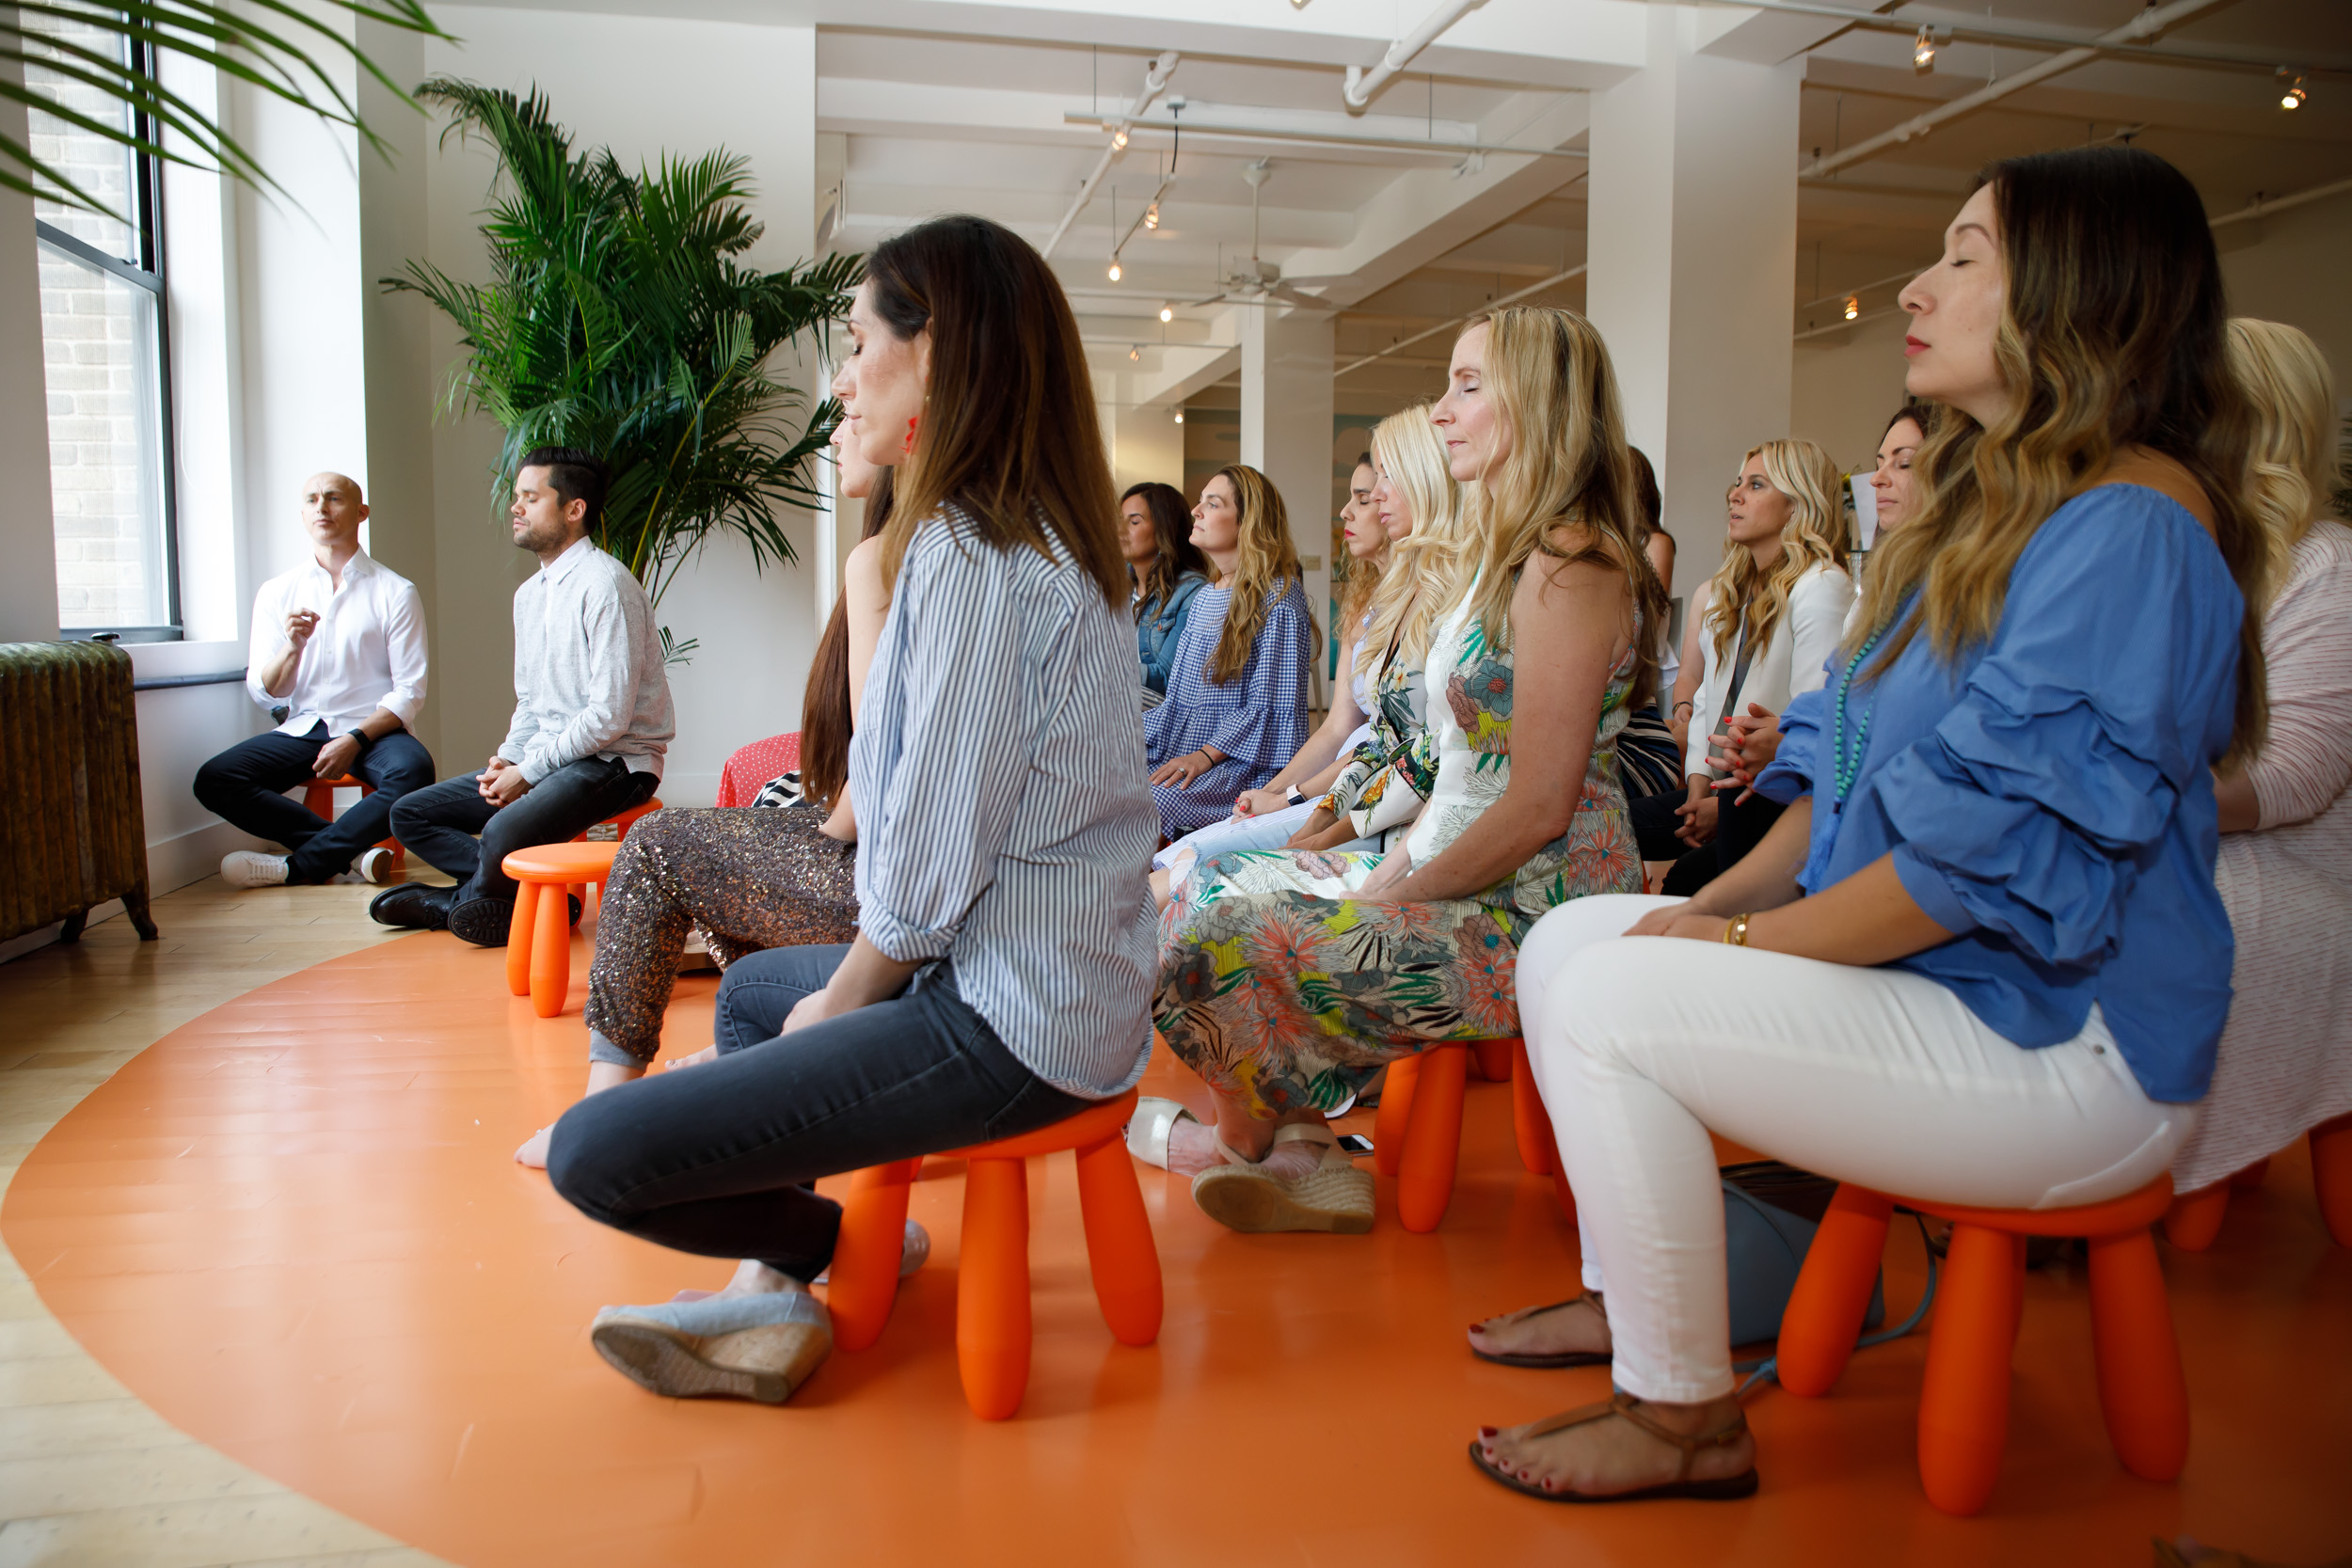 The group getting into the Meditation Session